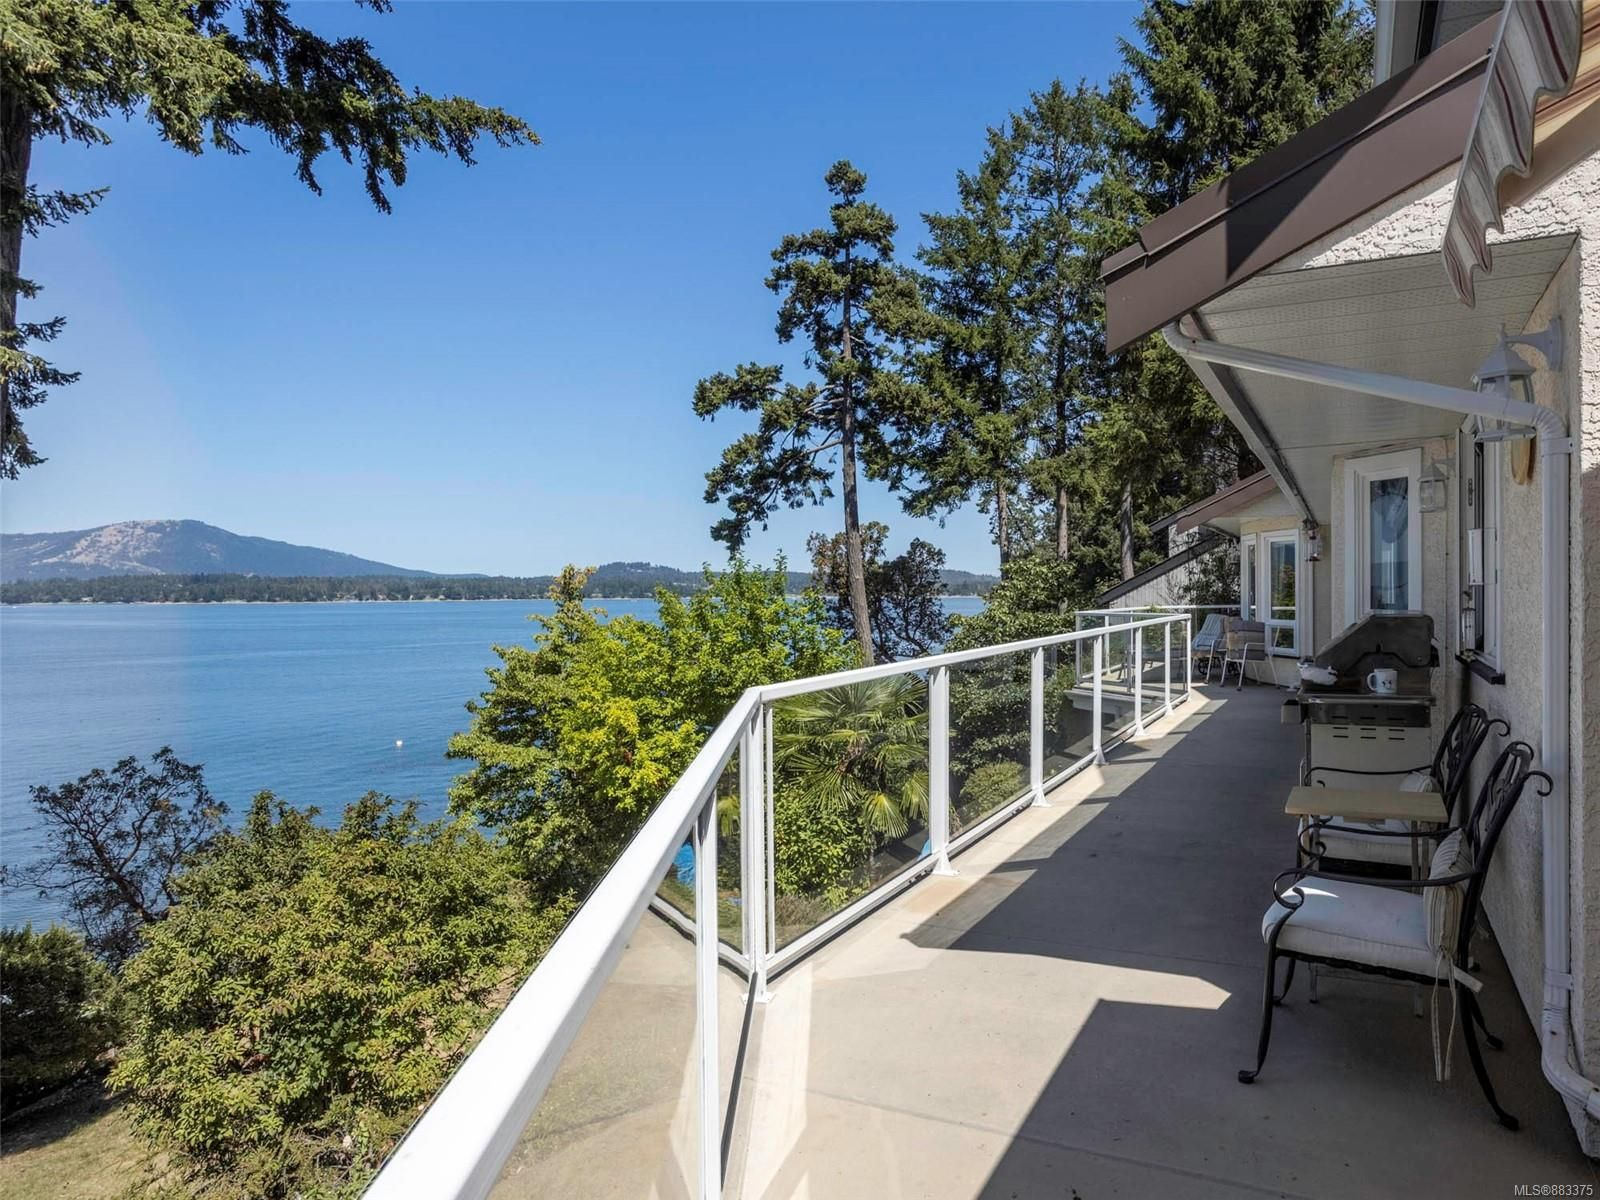 Main Photo: 9594 Ardmore Dr in : NS Ardmore House for sale (North Saanich)  : MLS®# 883375